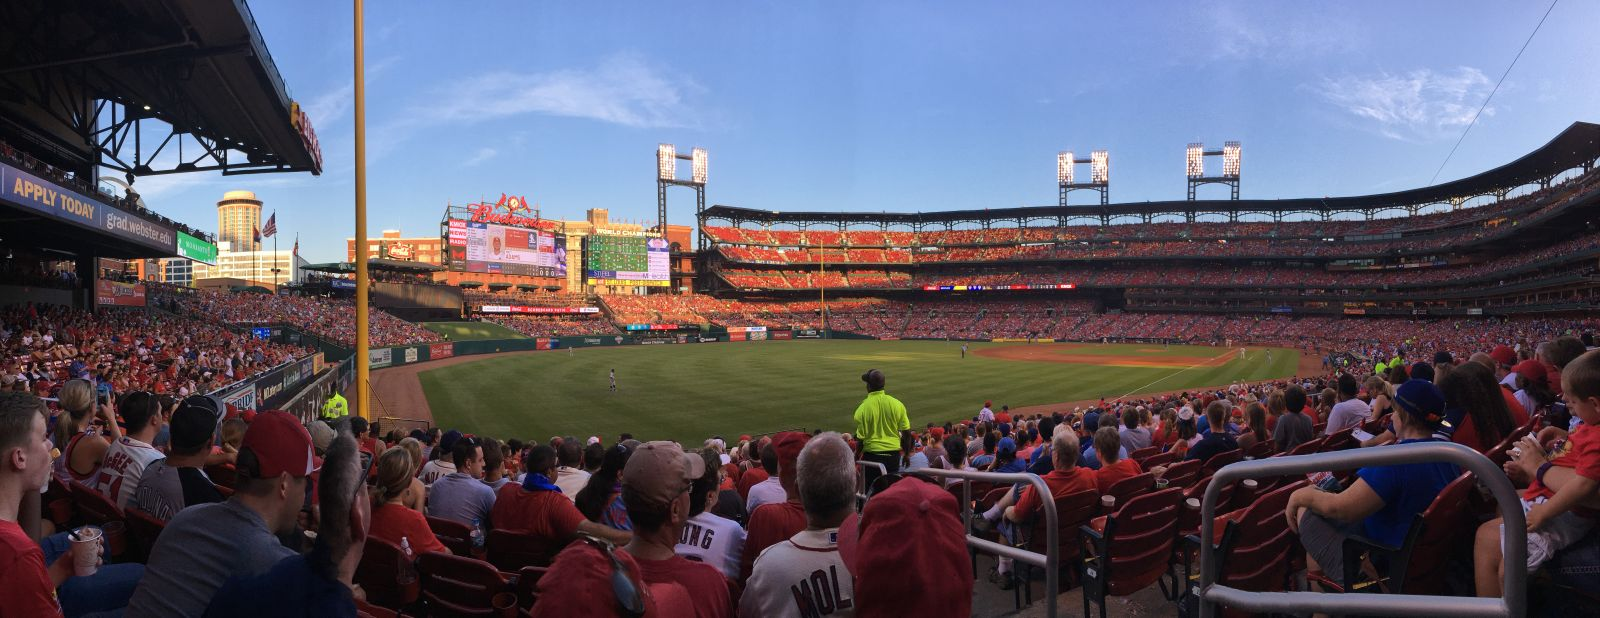 Seat View for Busch Stadium Section 168, Row 17, Seat 1